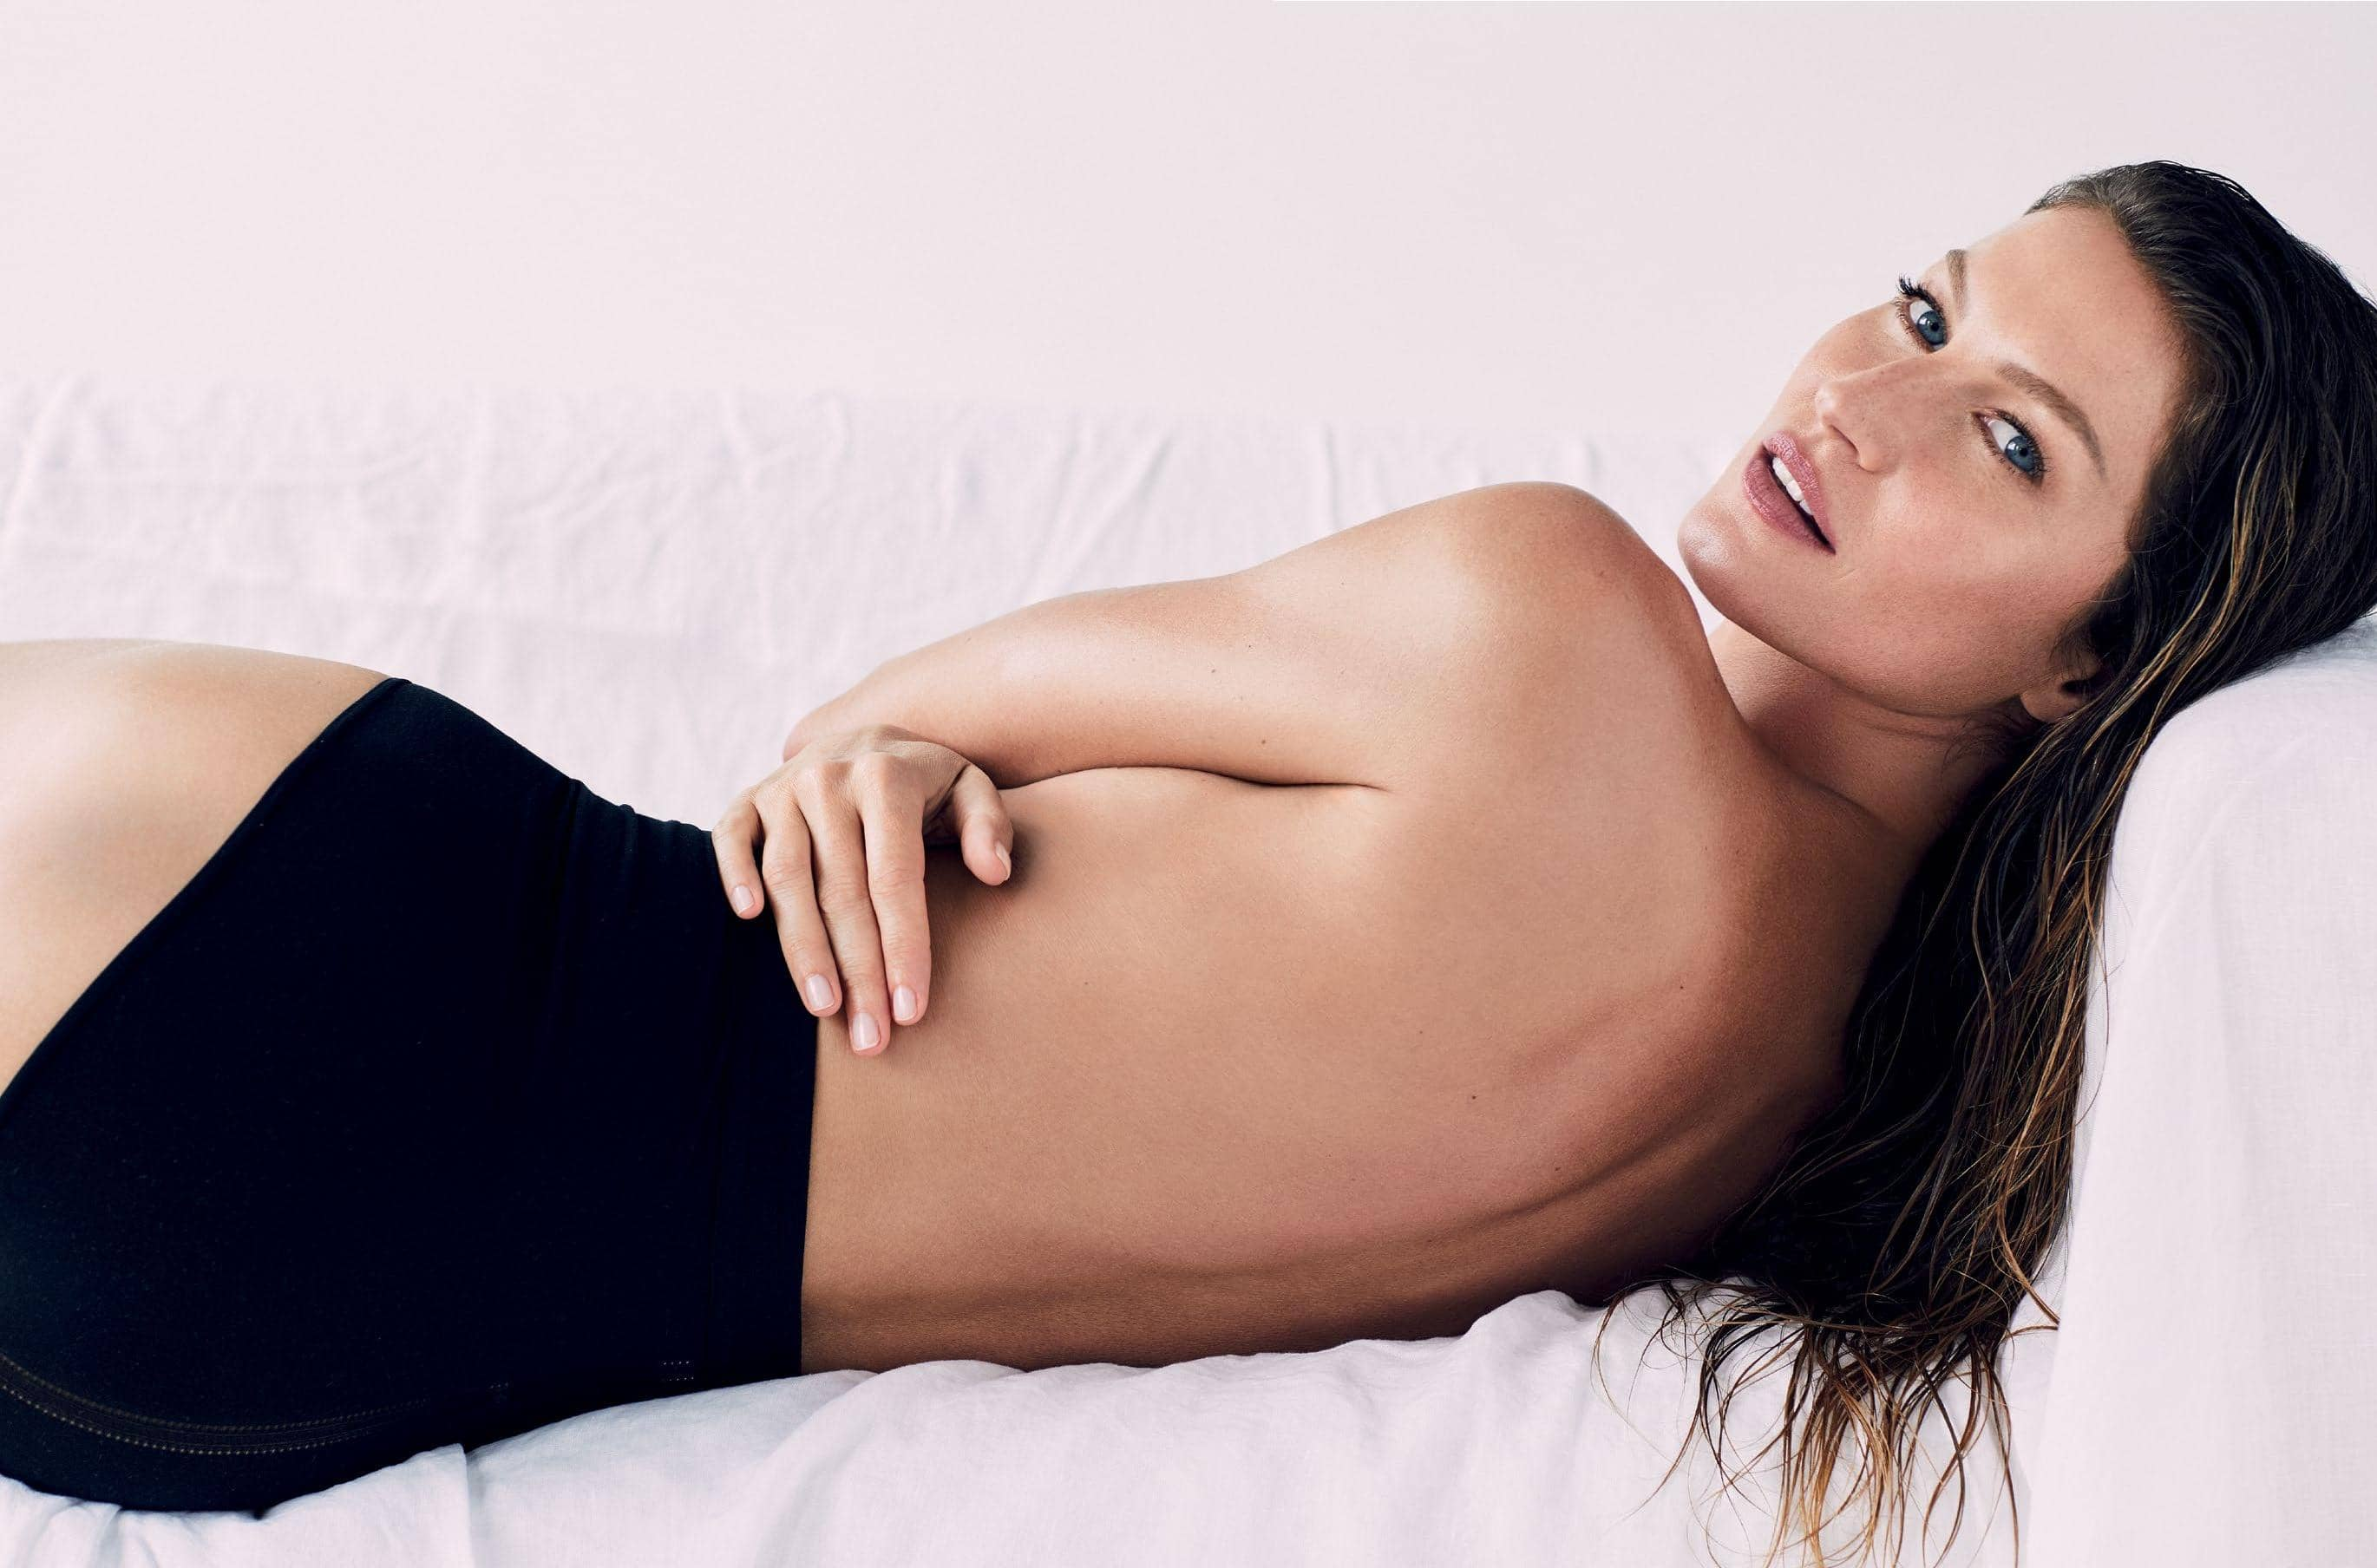 Gisele Bündchen On How To Stay Eternally Youthful